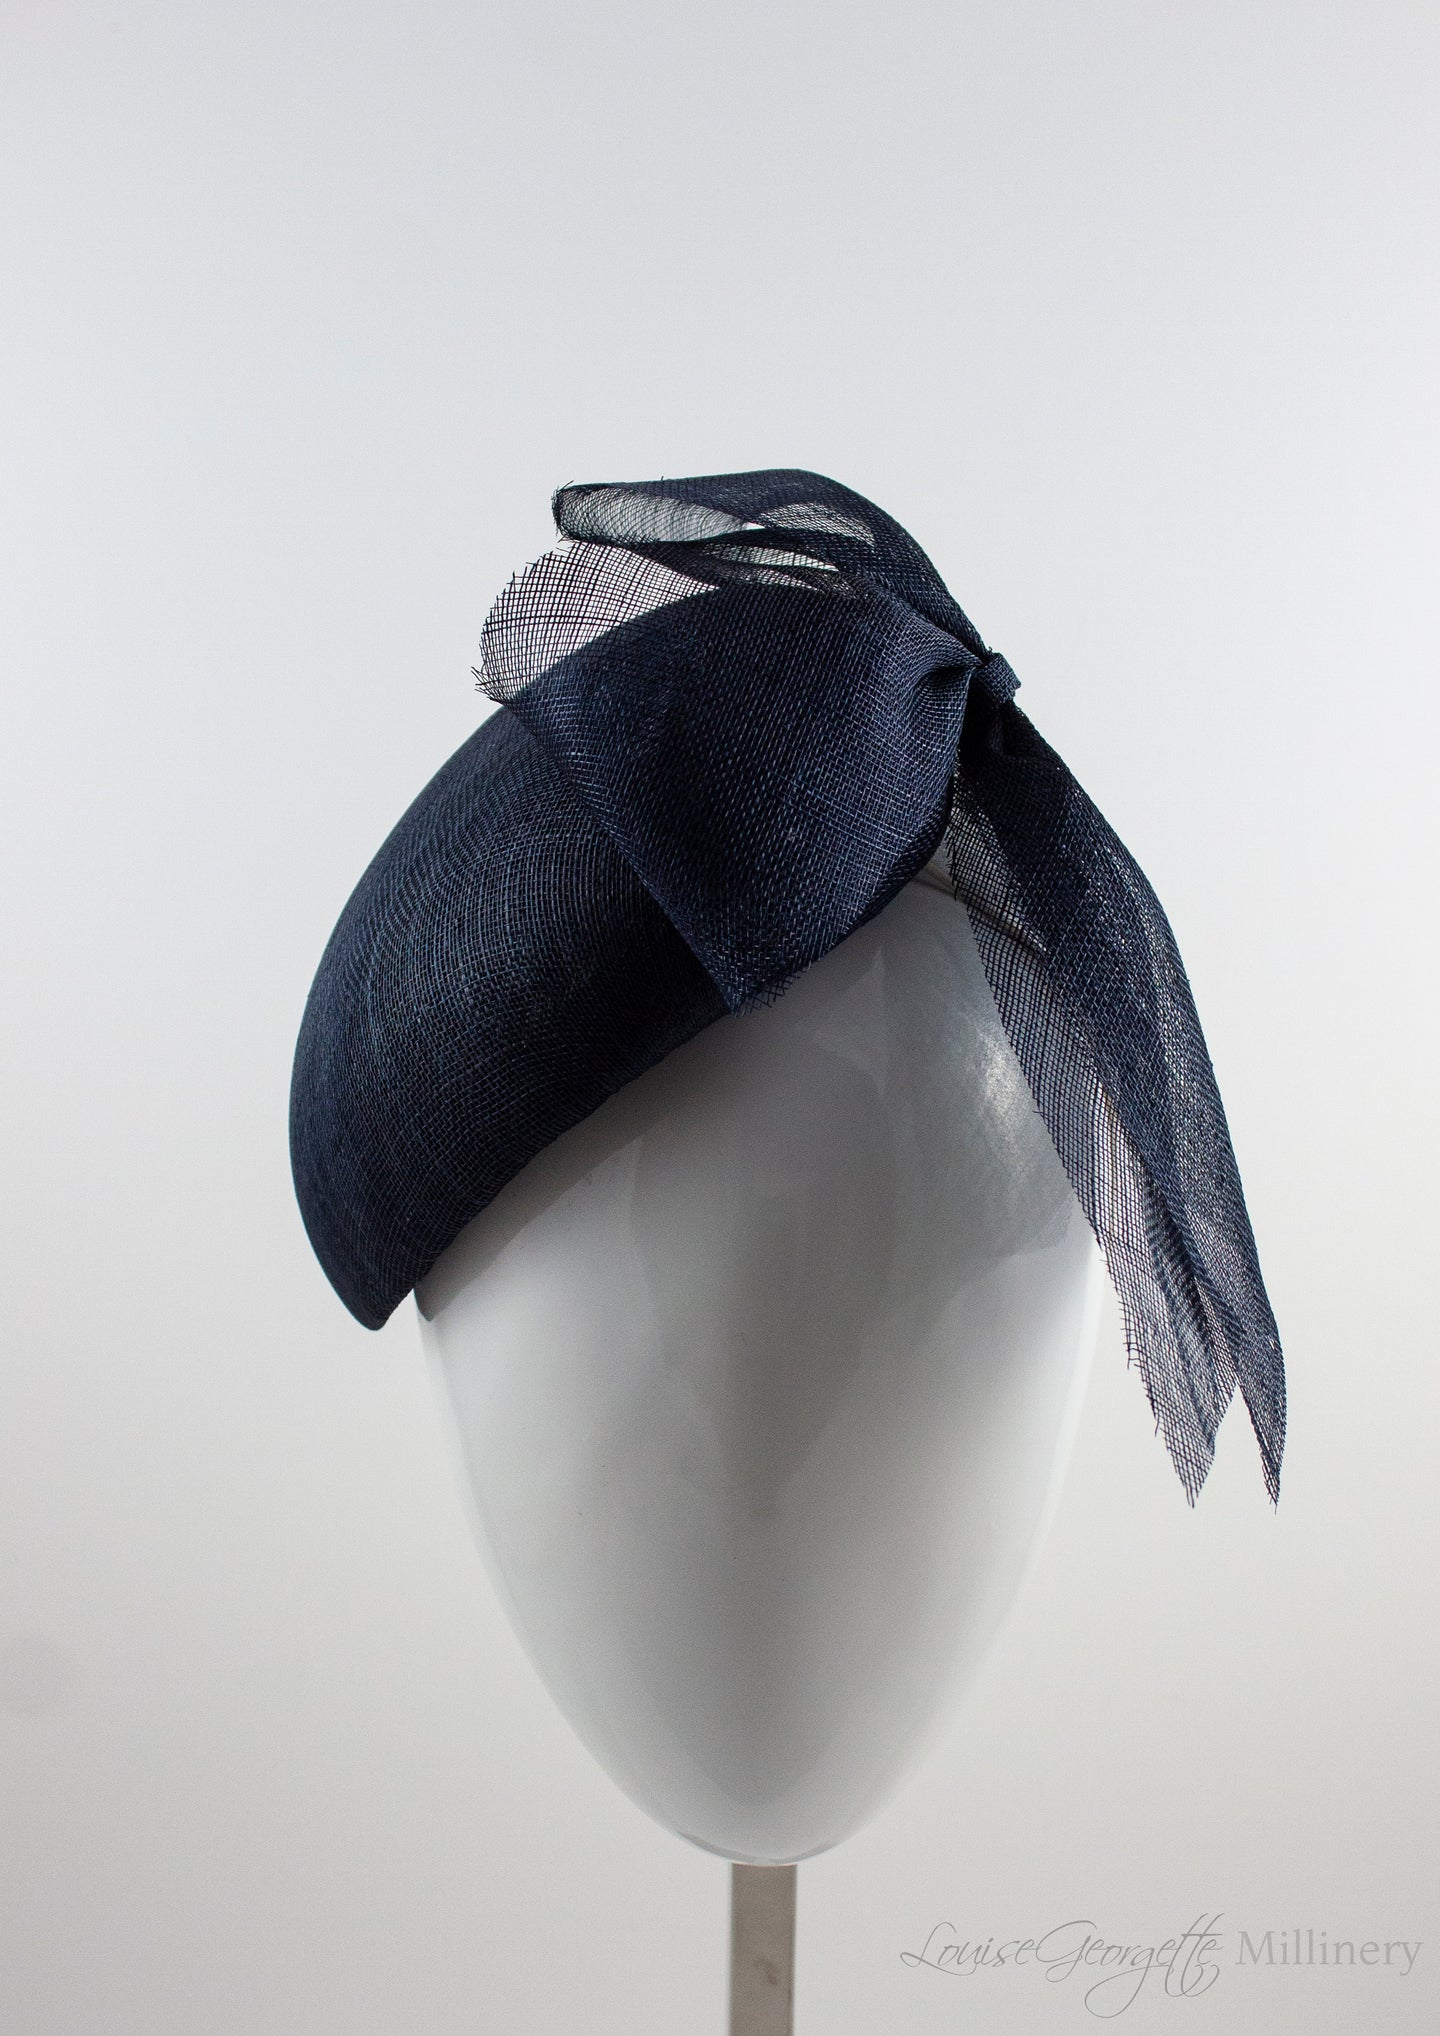 Font view. Luxurious Pinokpok hat with navy straw bow placed on a timeless Beret shape. Hat suitable for Royal Ascot, Epsom races, Weddings, and other special occasion outfits. Handmade Millinery made in London.